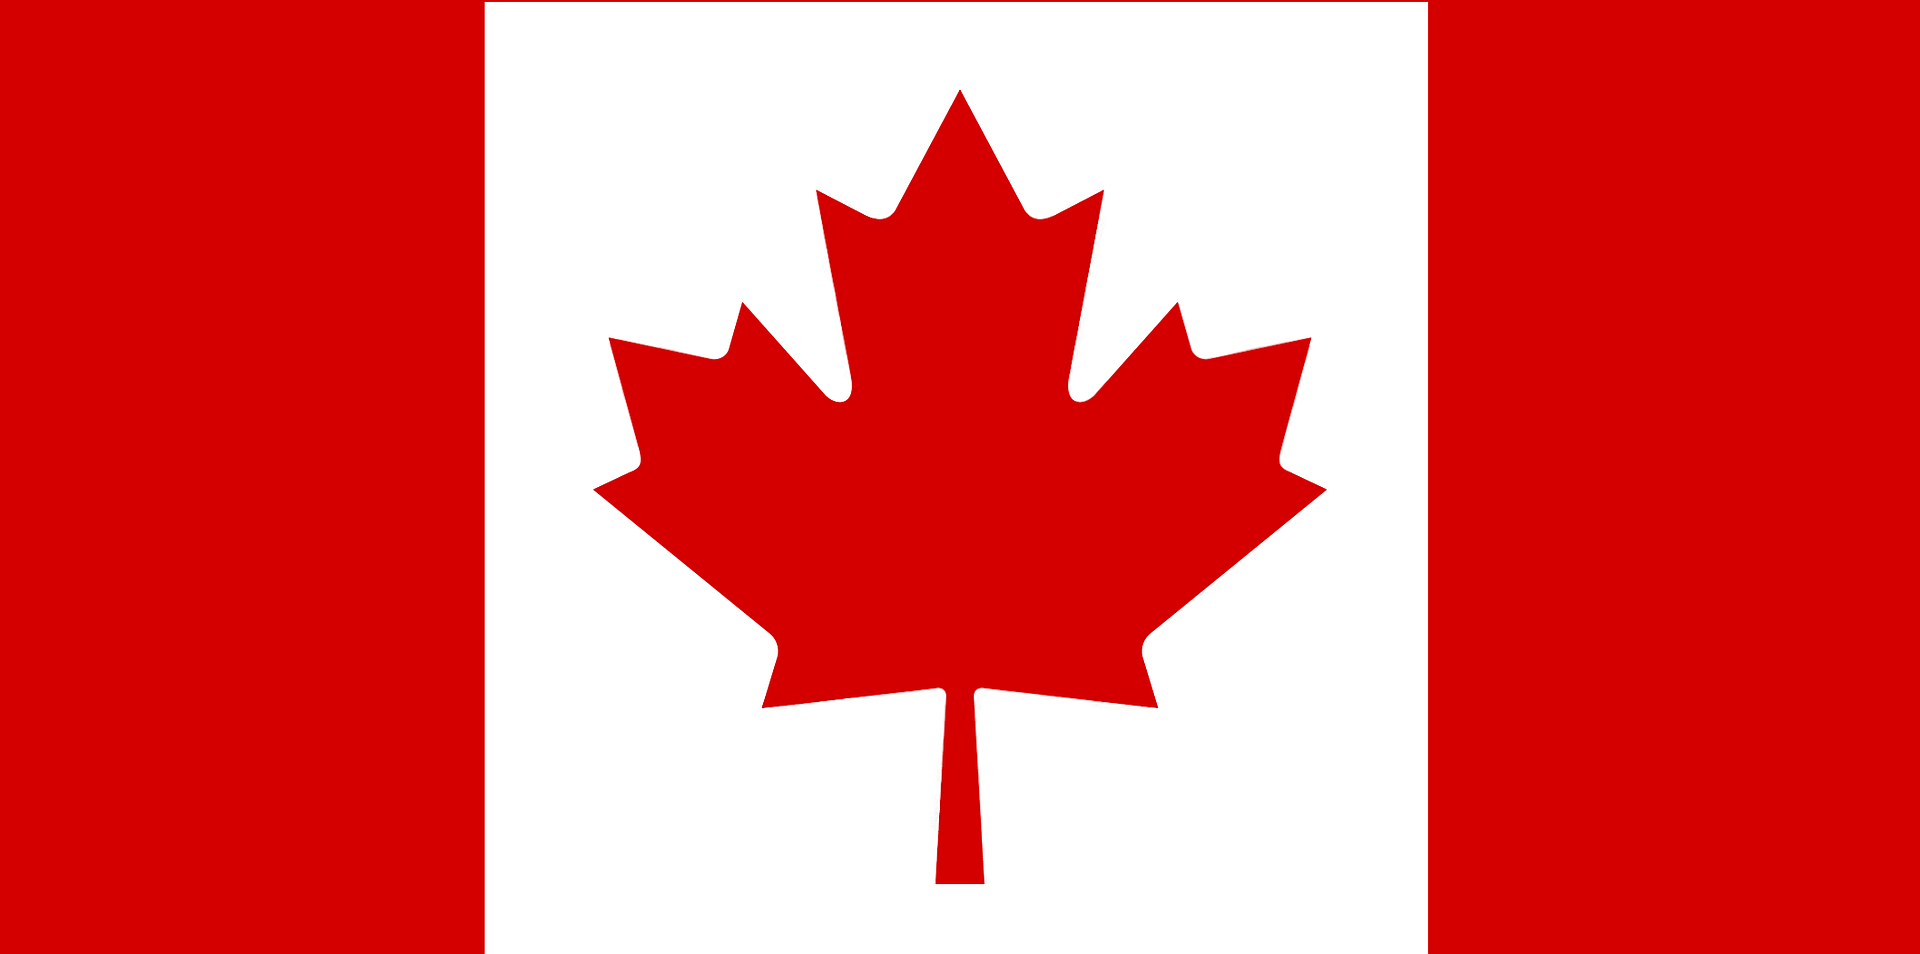 canada-2906822_1920.png